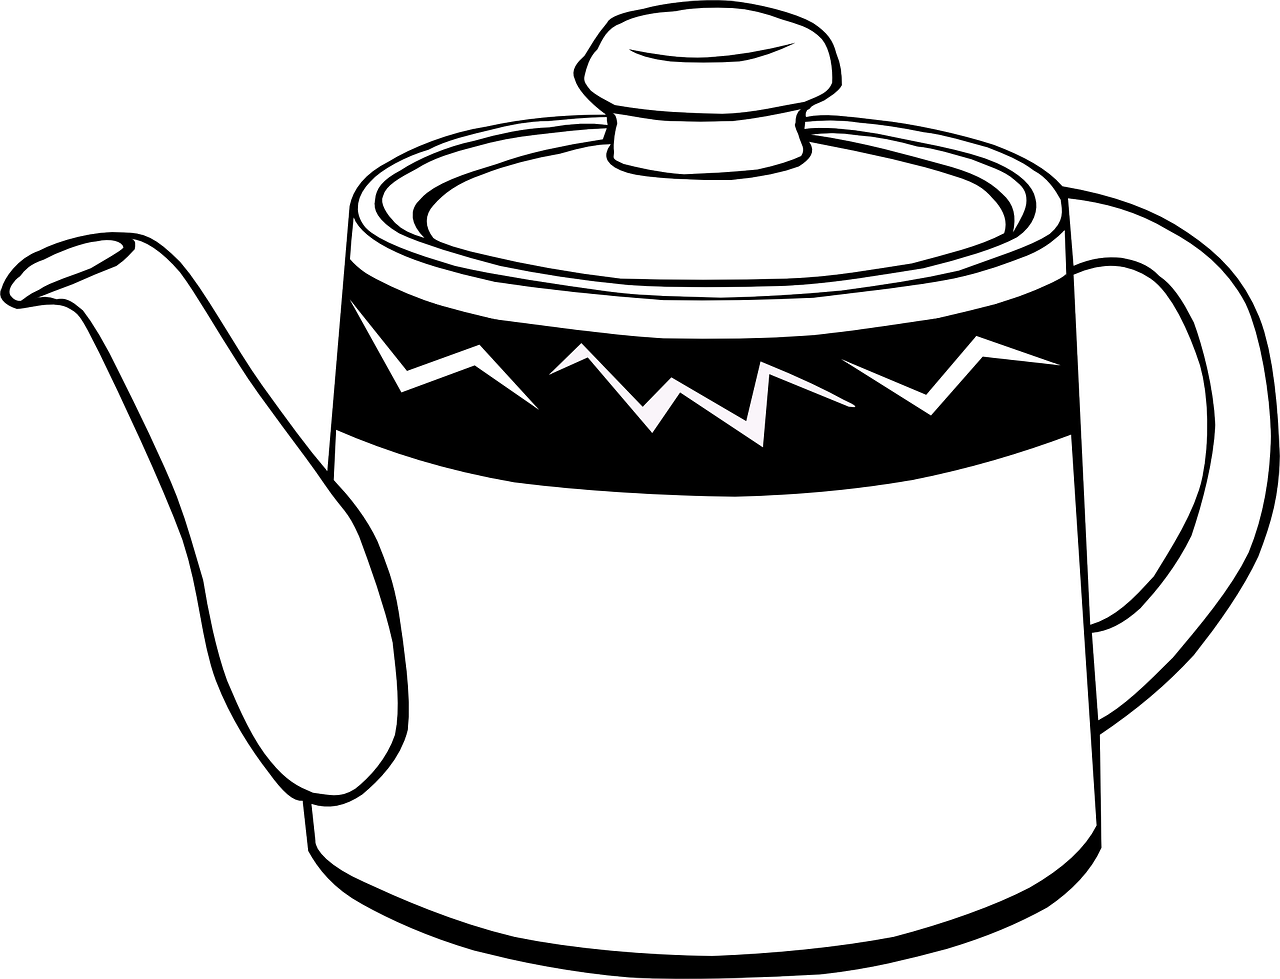 teapot,vessel,black and white,tea,beverages,infusion,pot,drinks,pottery,utensils,free vector graphics,free pictures, free photos, free images, royalty free, free illustrations, public domain